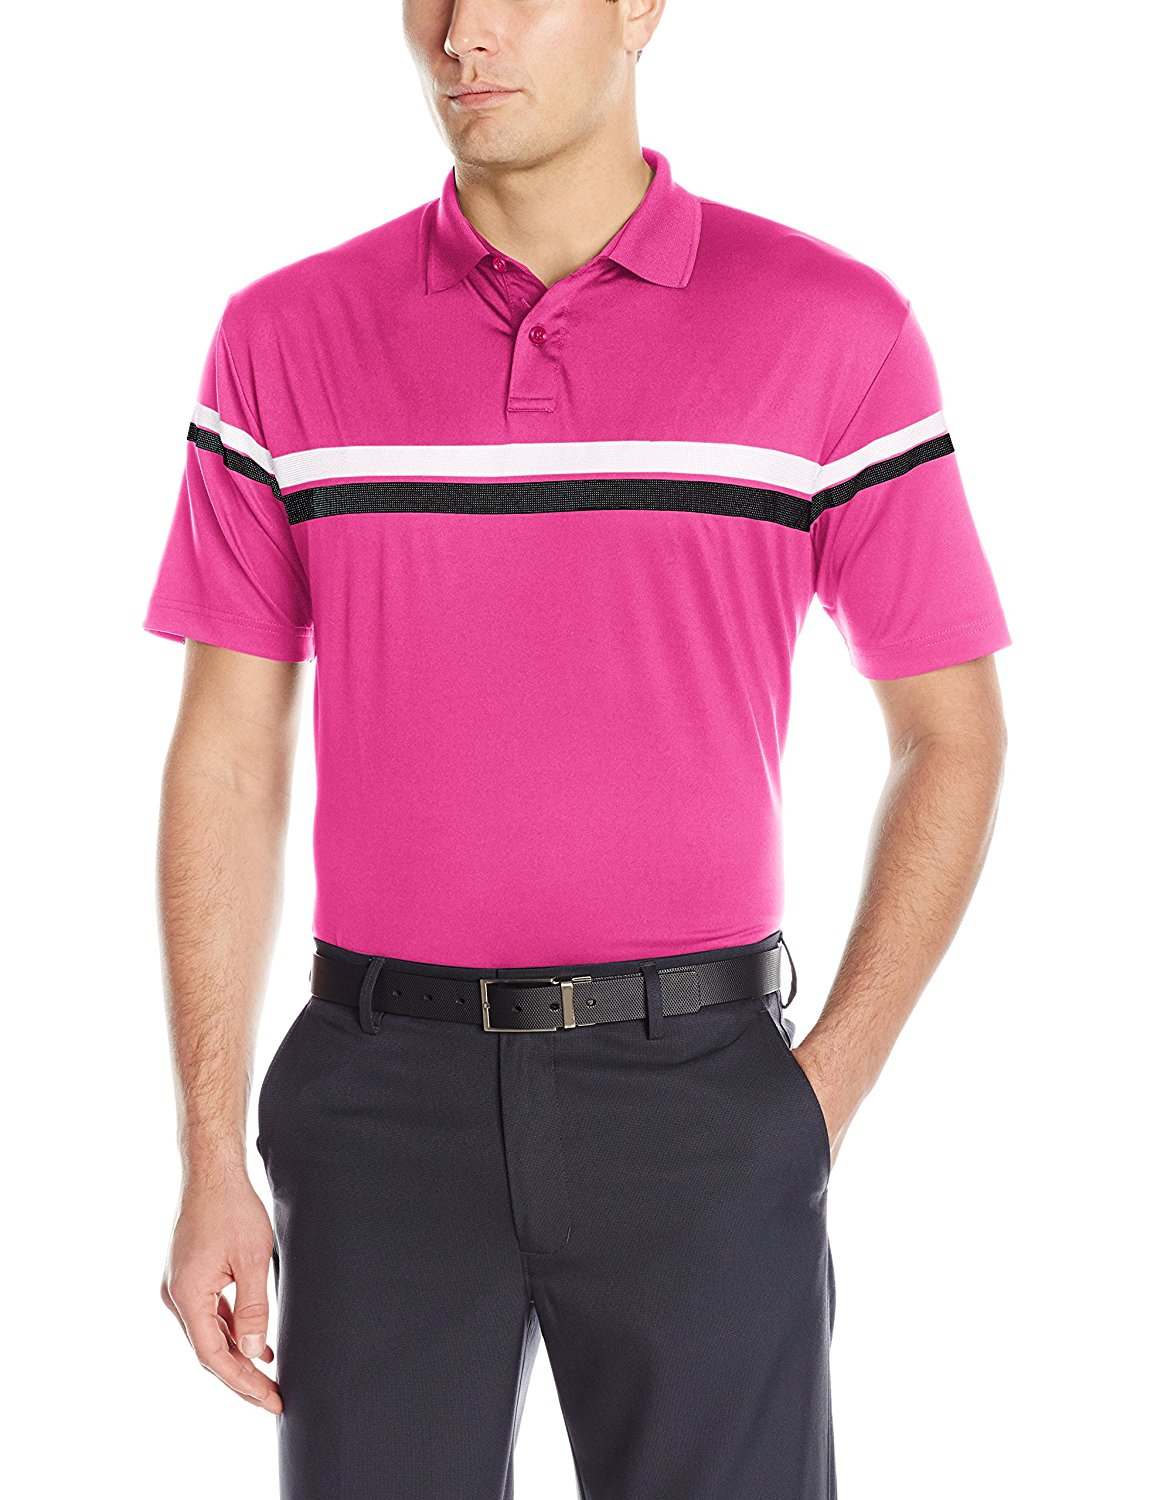 Callaway Men's Golf Performance Short Sleeve Athletic Printed Stripes Polo Shirt